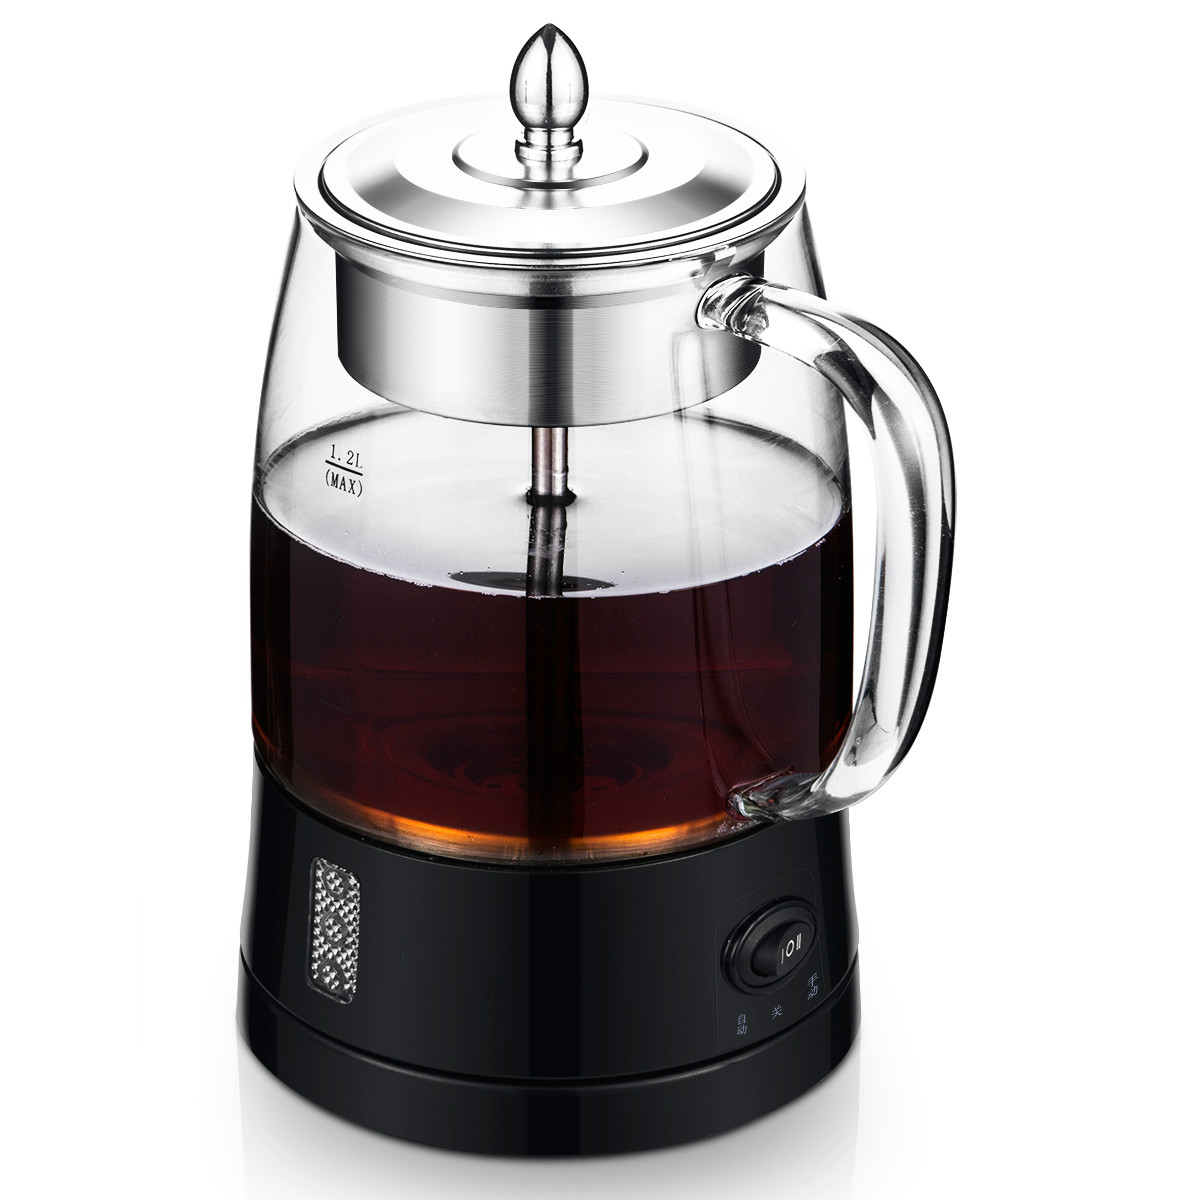 Electric kettle Full automatic steam boiling teapot thermoelectric glass brewed tea ware black black tea brewed machine glass automatic steam boiling pu er flower teapot insulation electric kettle